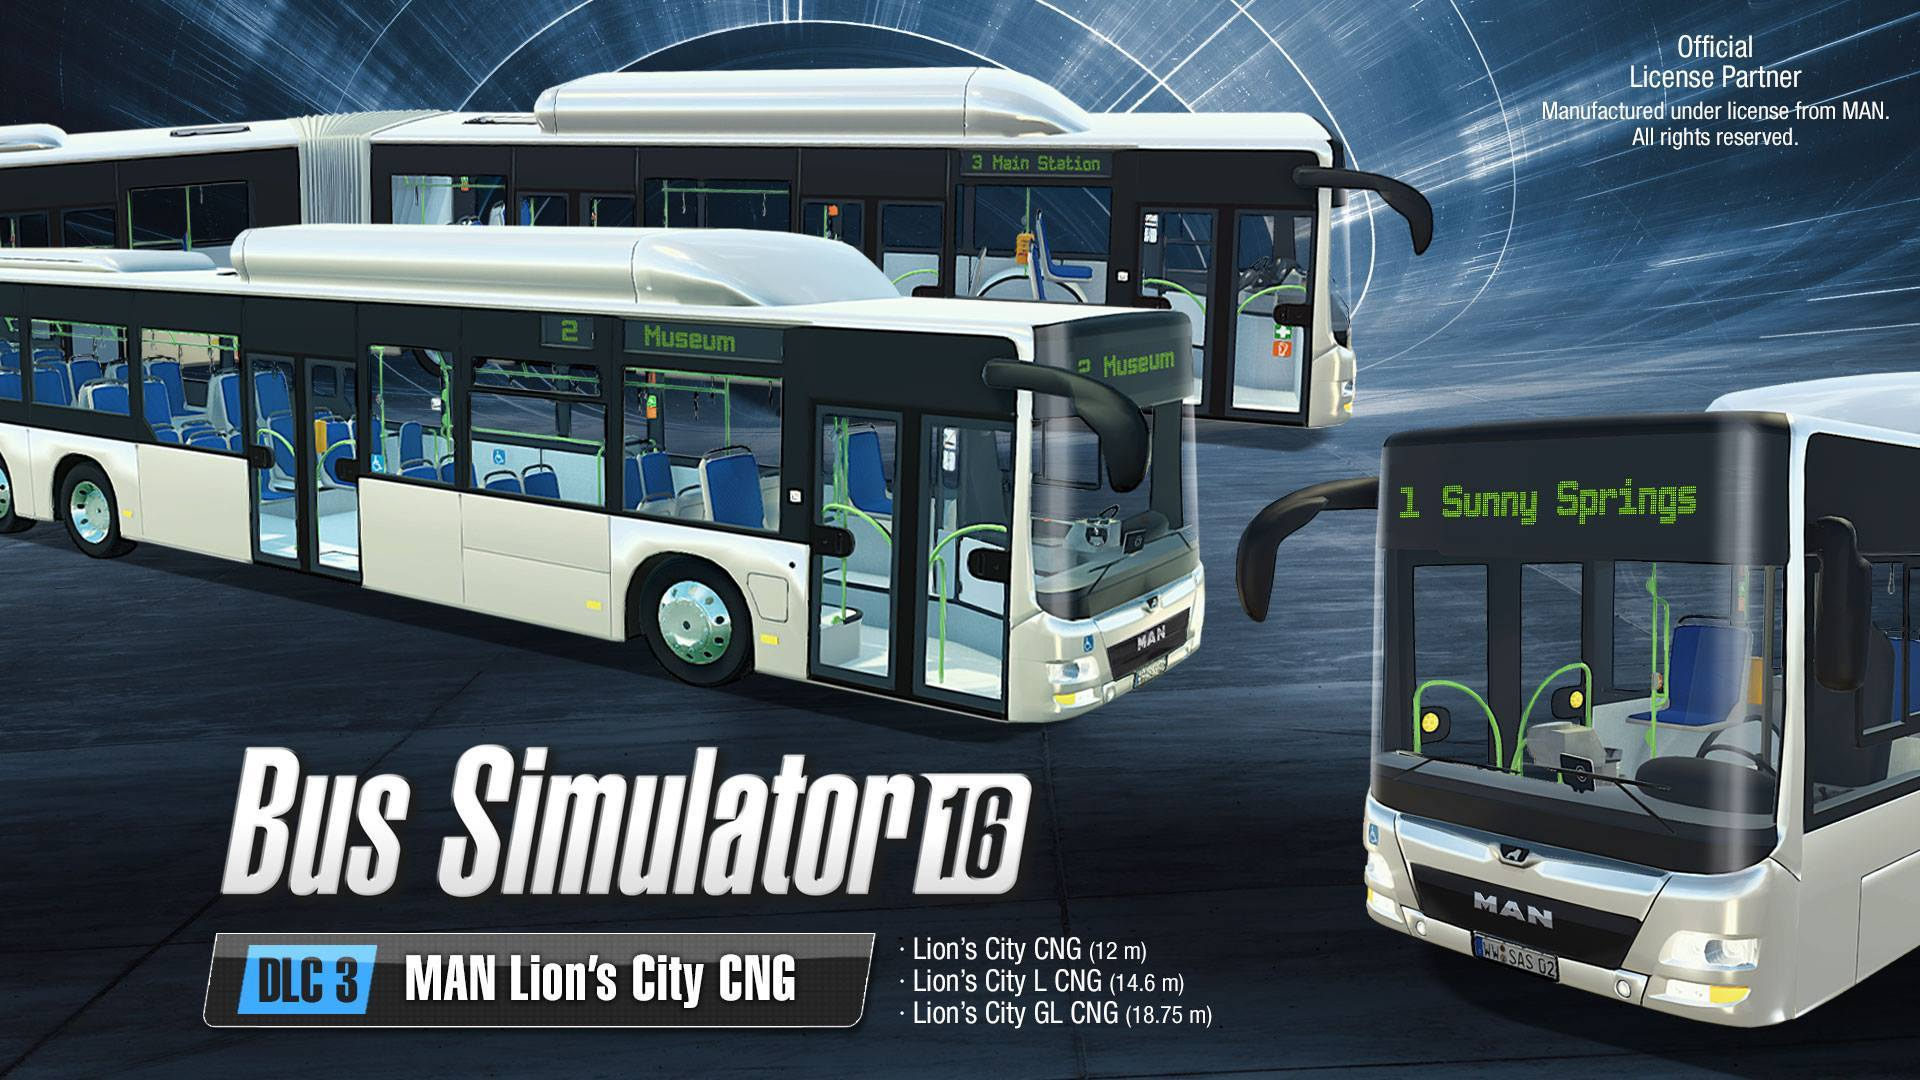 Bus Simulator 16 - MAN Lion's City CNG DLC